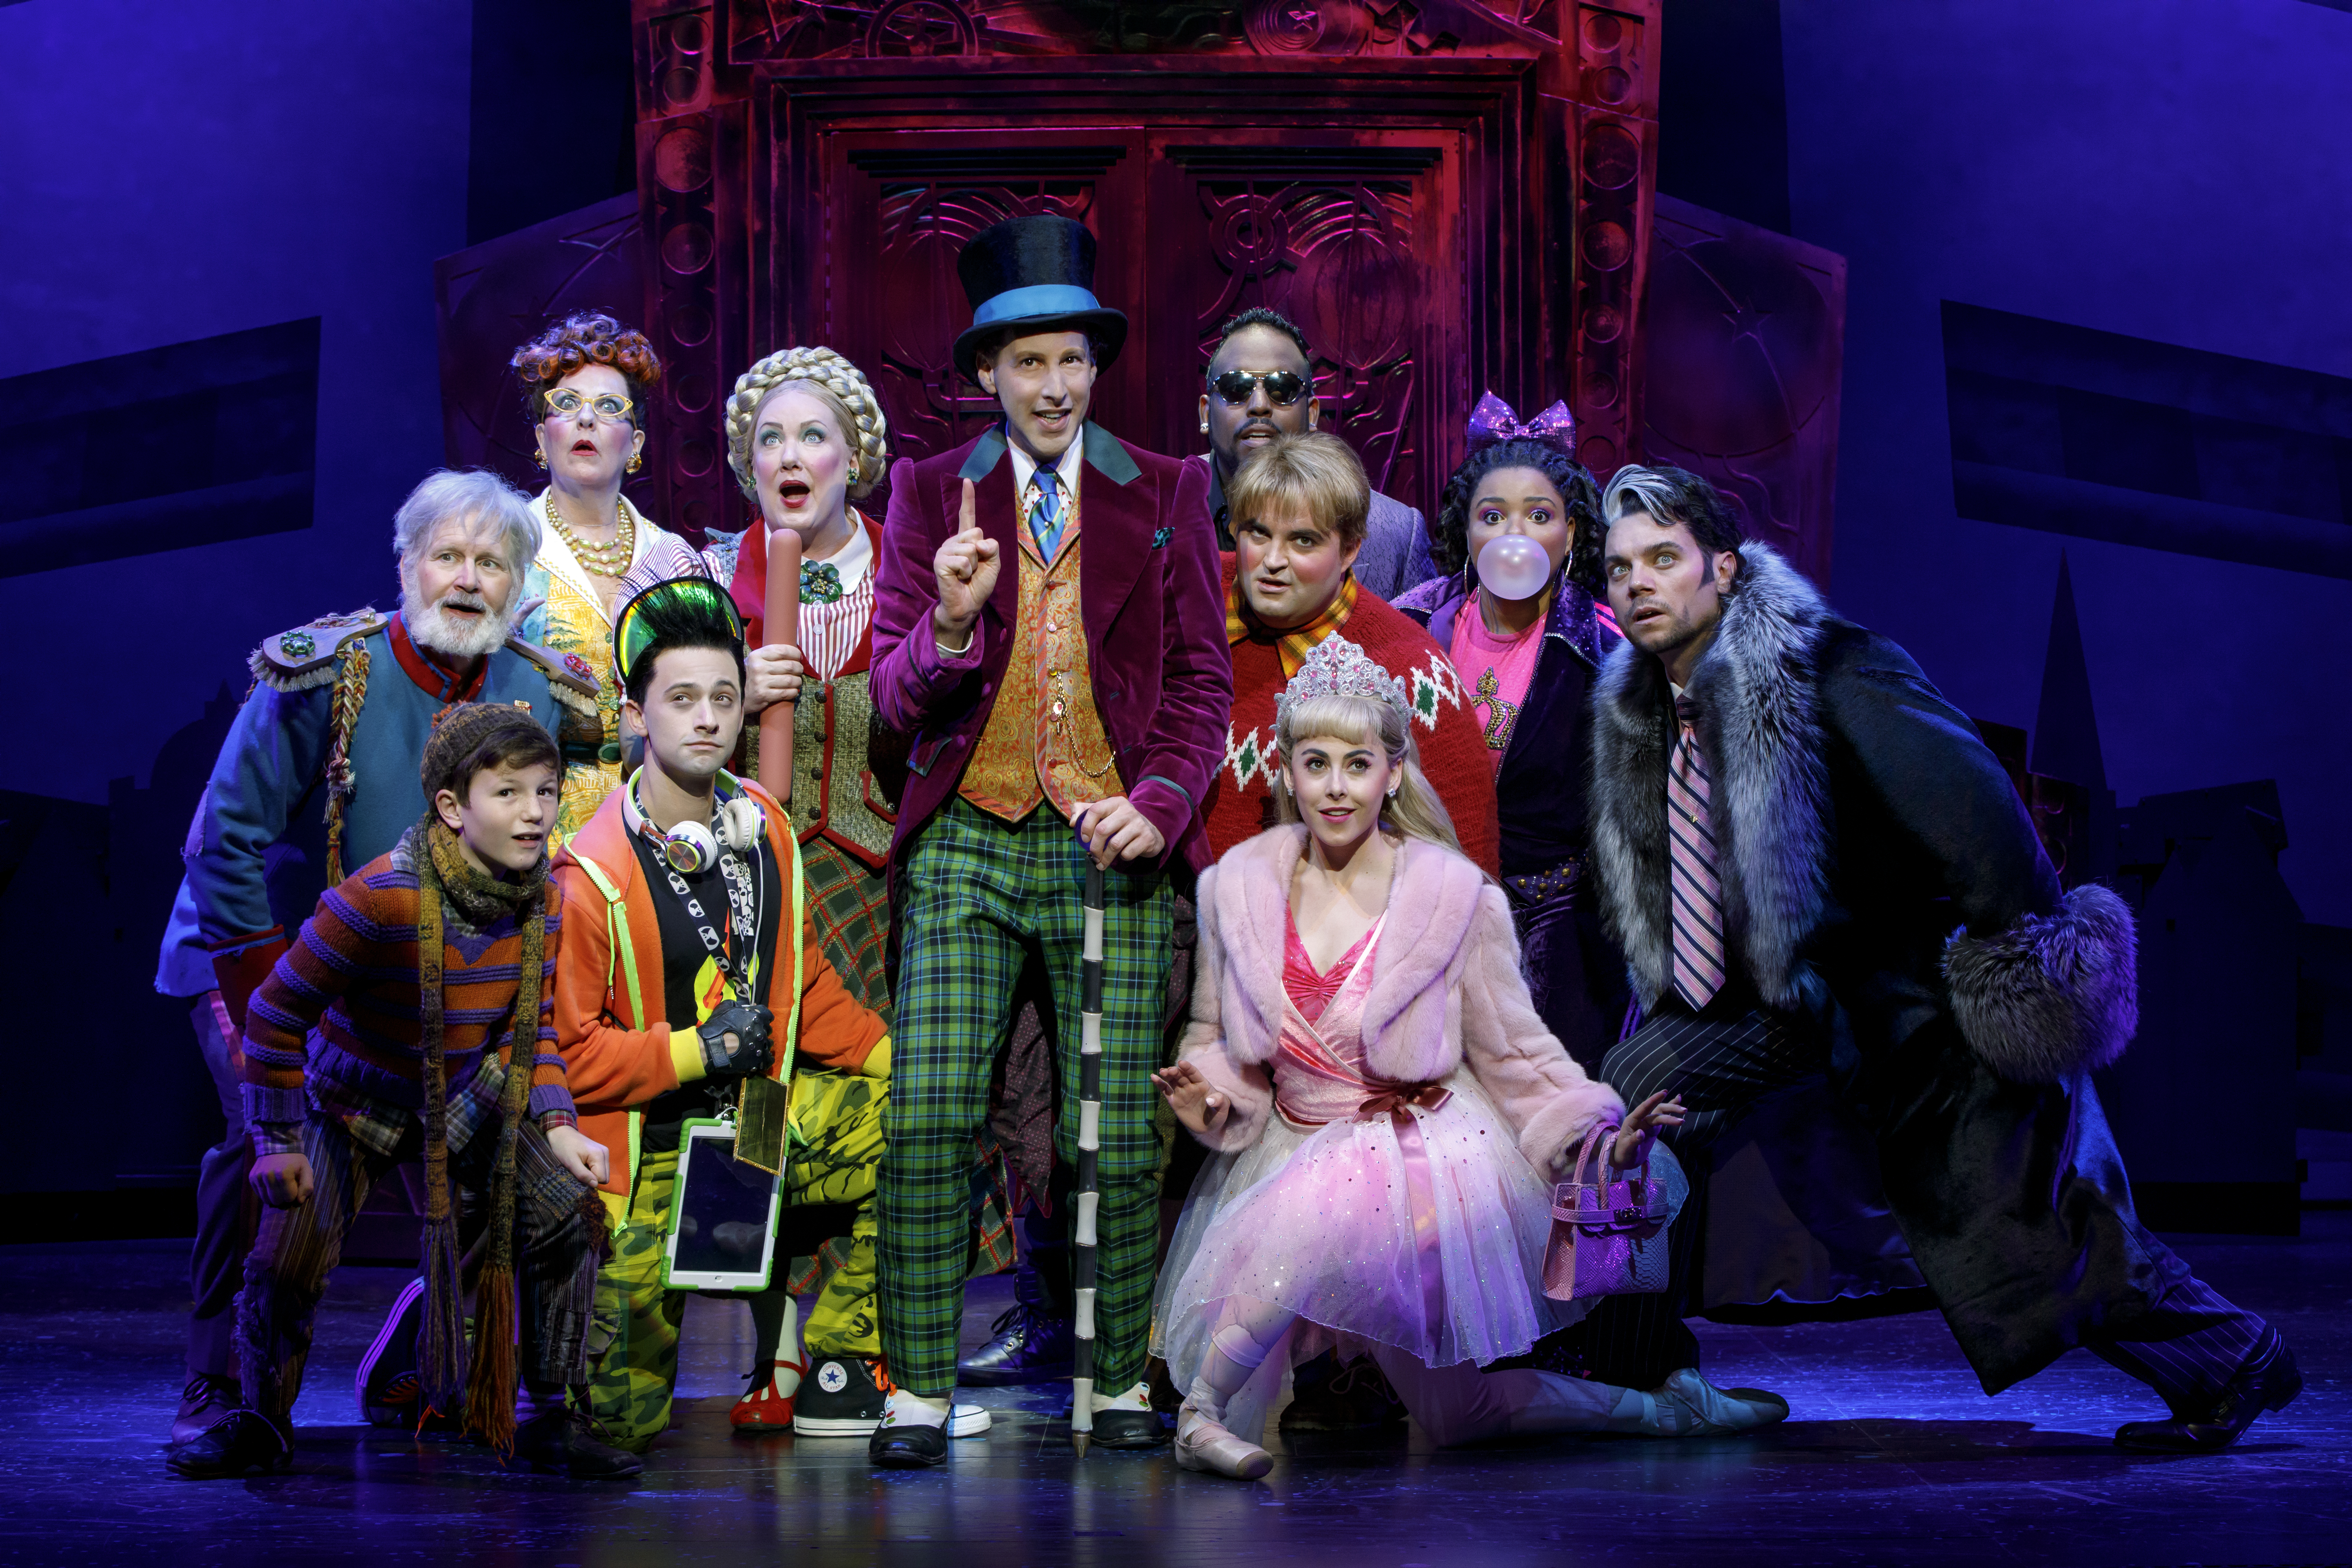 Live Theatre Review: Charlie and the Chocolate Factory the Musical